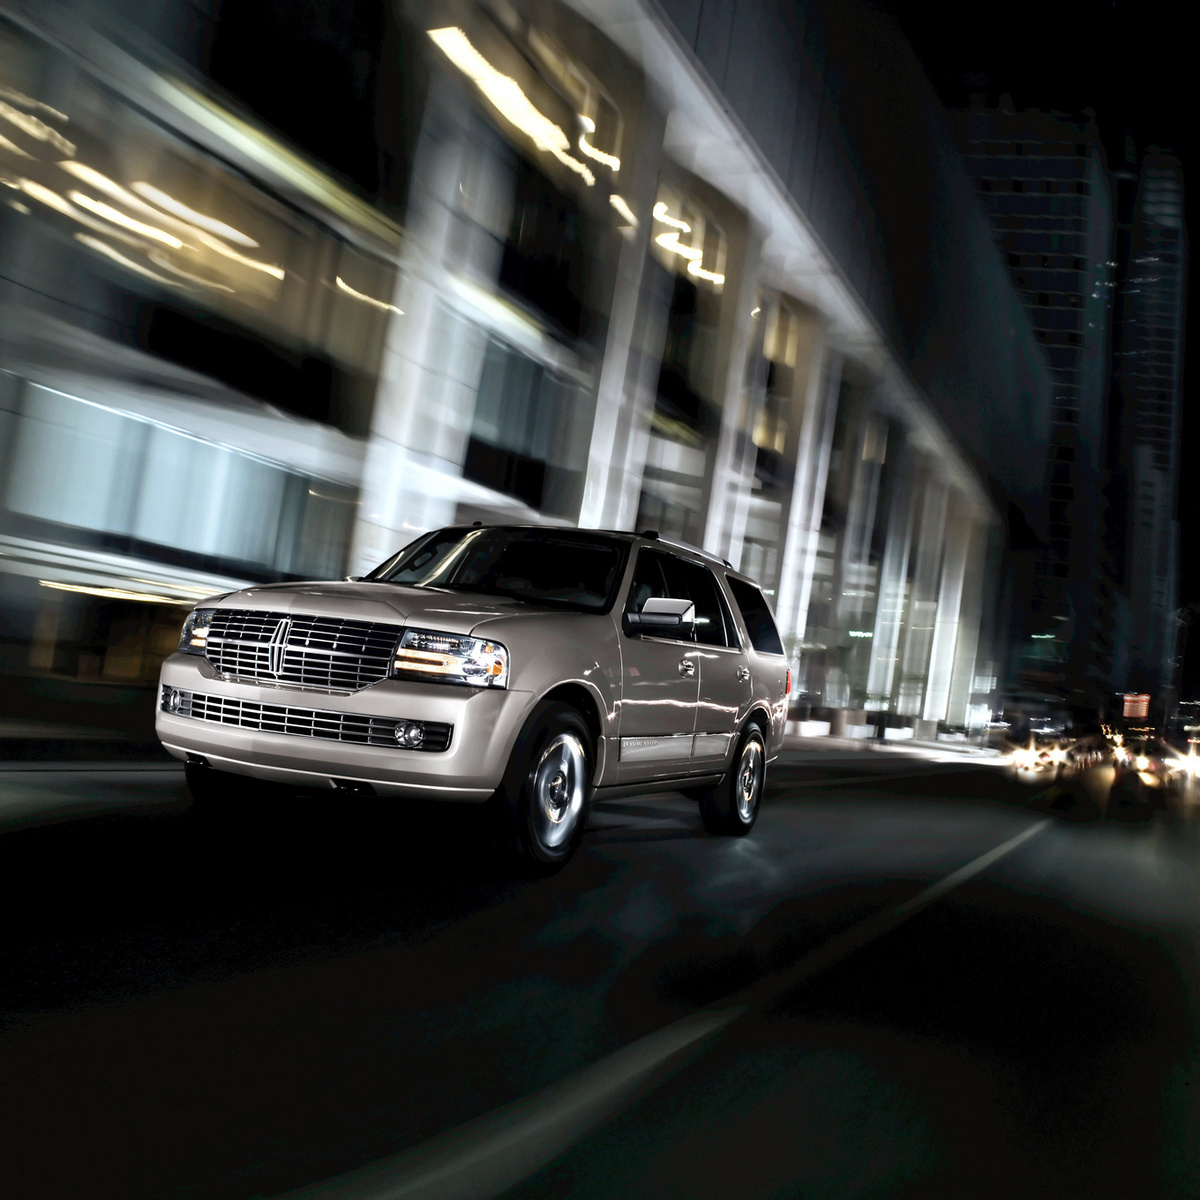 2009 Lincoln Town Car For Sale: 2002 Lincoln Navigator